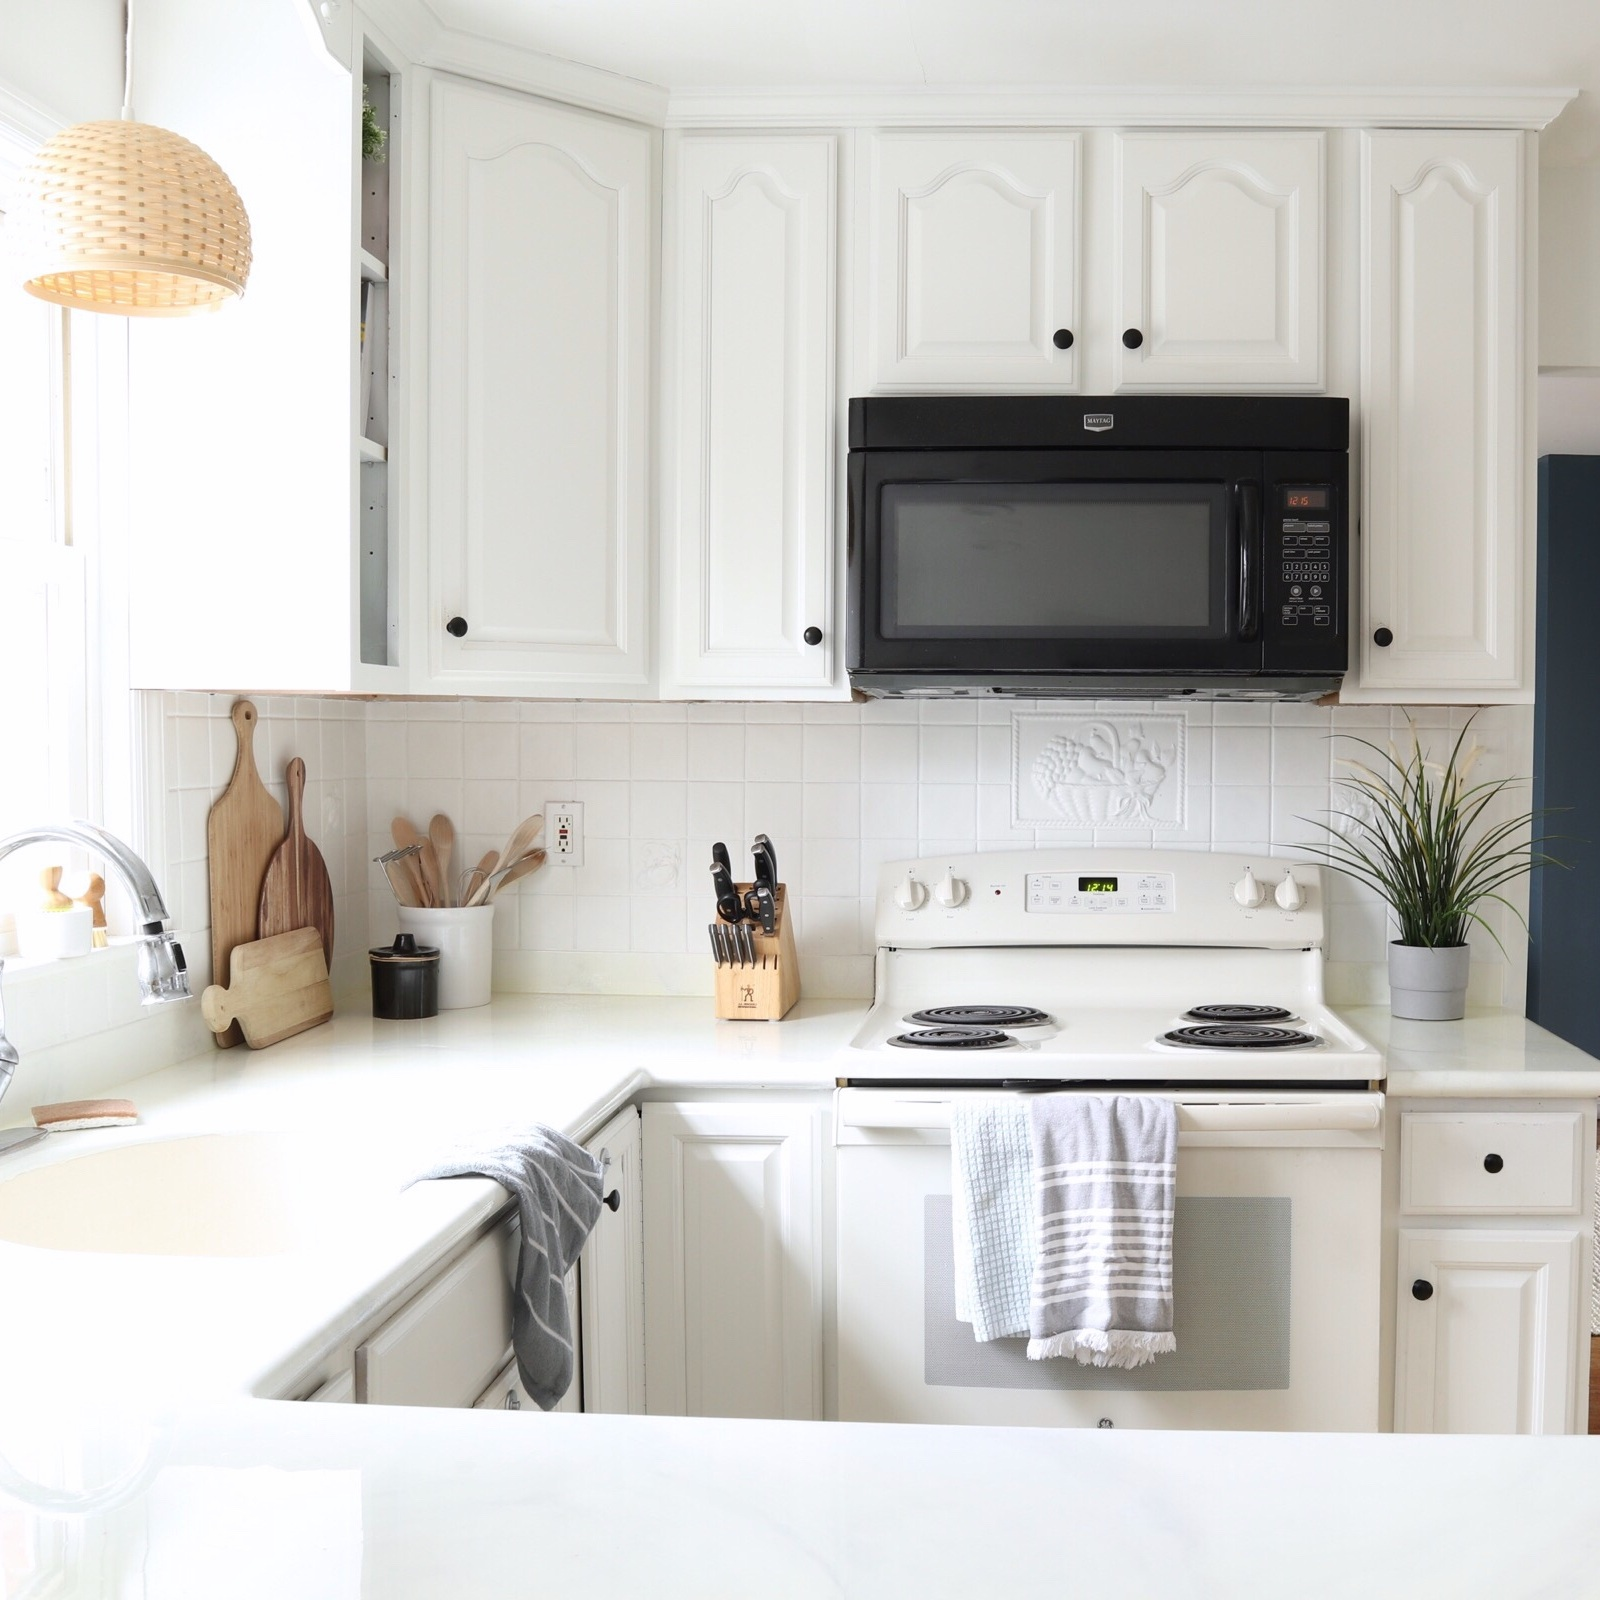 DIY Painted Backsplash -